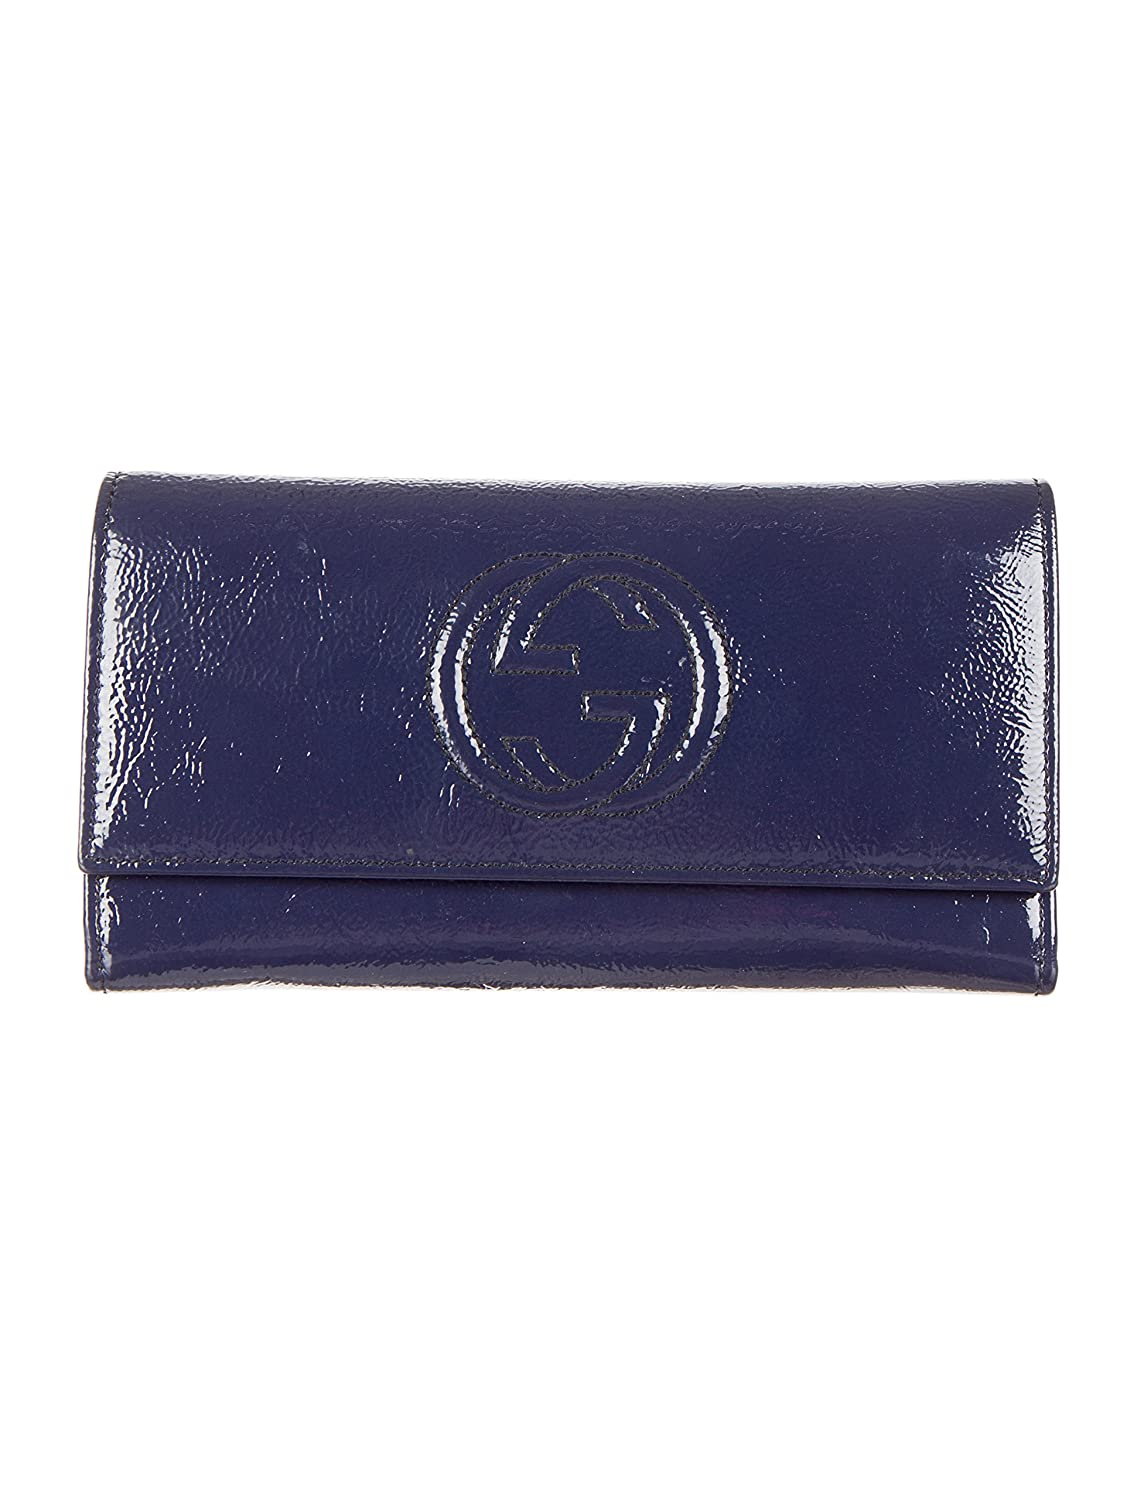 4f5d8f3755e snap closure embossed interlocking G twelve card slots and three bill  compartments two separate interior compartments closed  7.5 x 4 x 1 inches